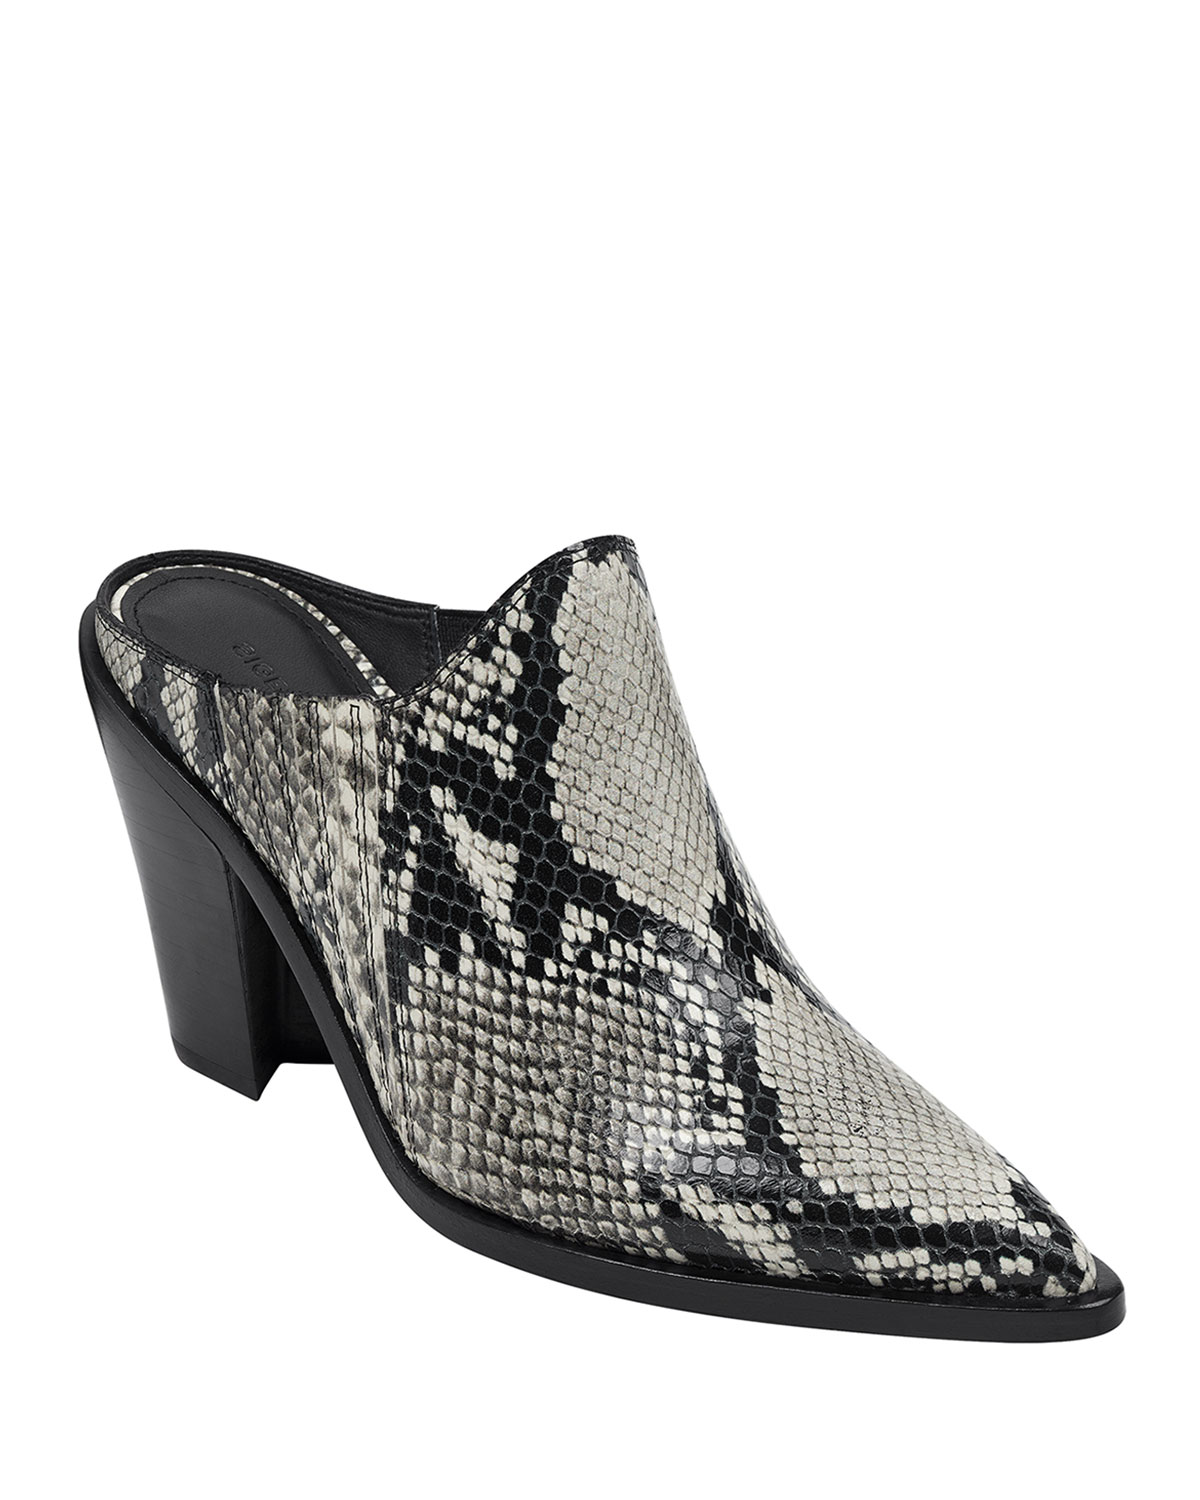 Kaden Snake-Print Leather Slide Mules